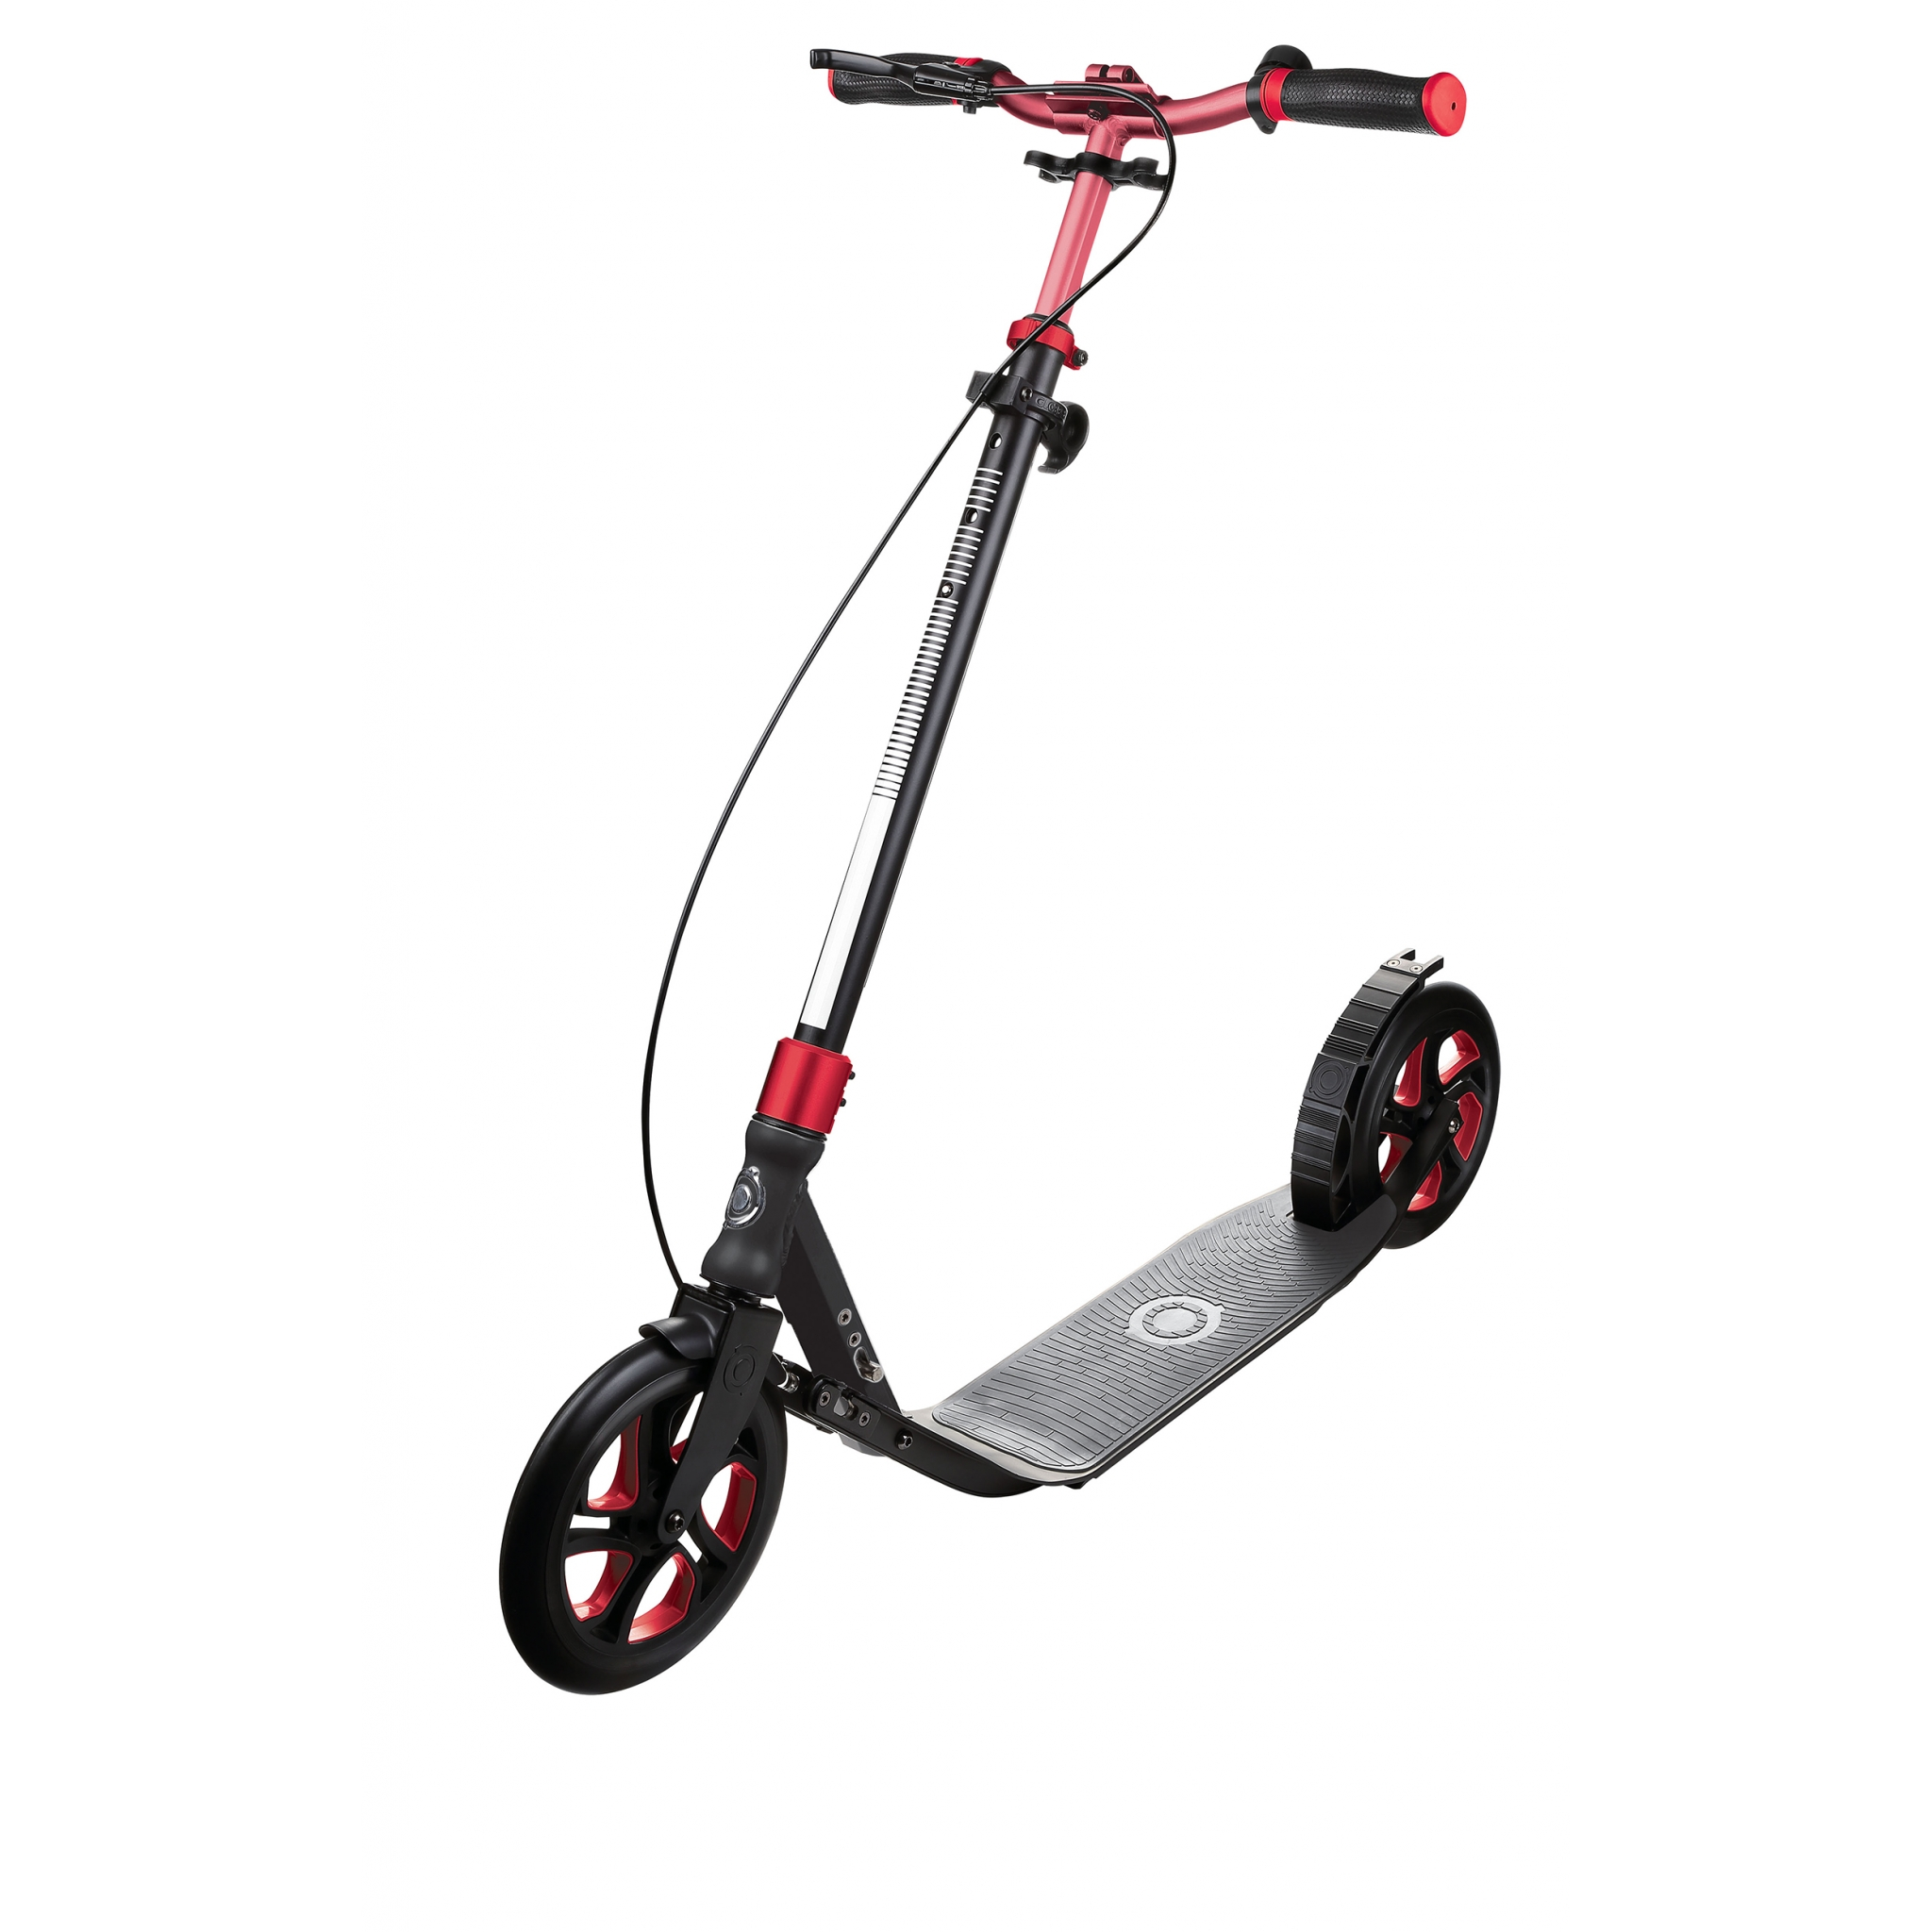 big wheel kick scooter - Globber ONE NL 230 ULTIMATE 1